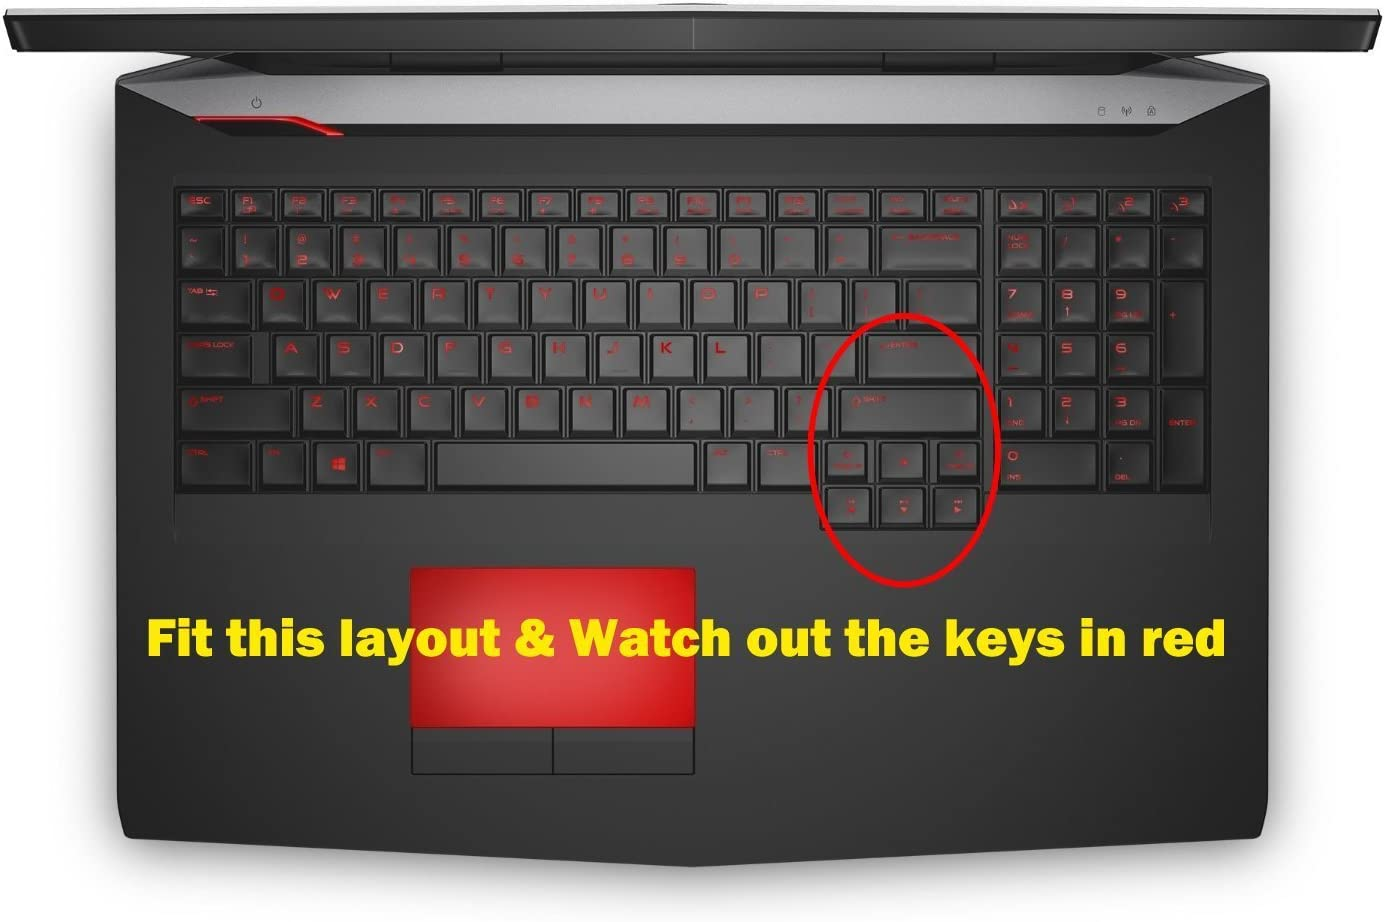 Bank ID Card Gaming Laptop 2013 version with BingoBuy Card Case for Credit BingoBuy Semi-White Soft Ultra thin Silicone Keyboard Protector Skin Cover for Dell Alienware 17 R1 if your enter key looks like 7, our skin cant fit